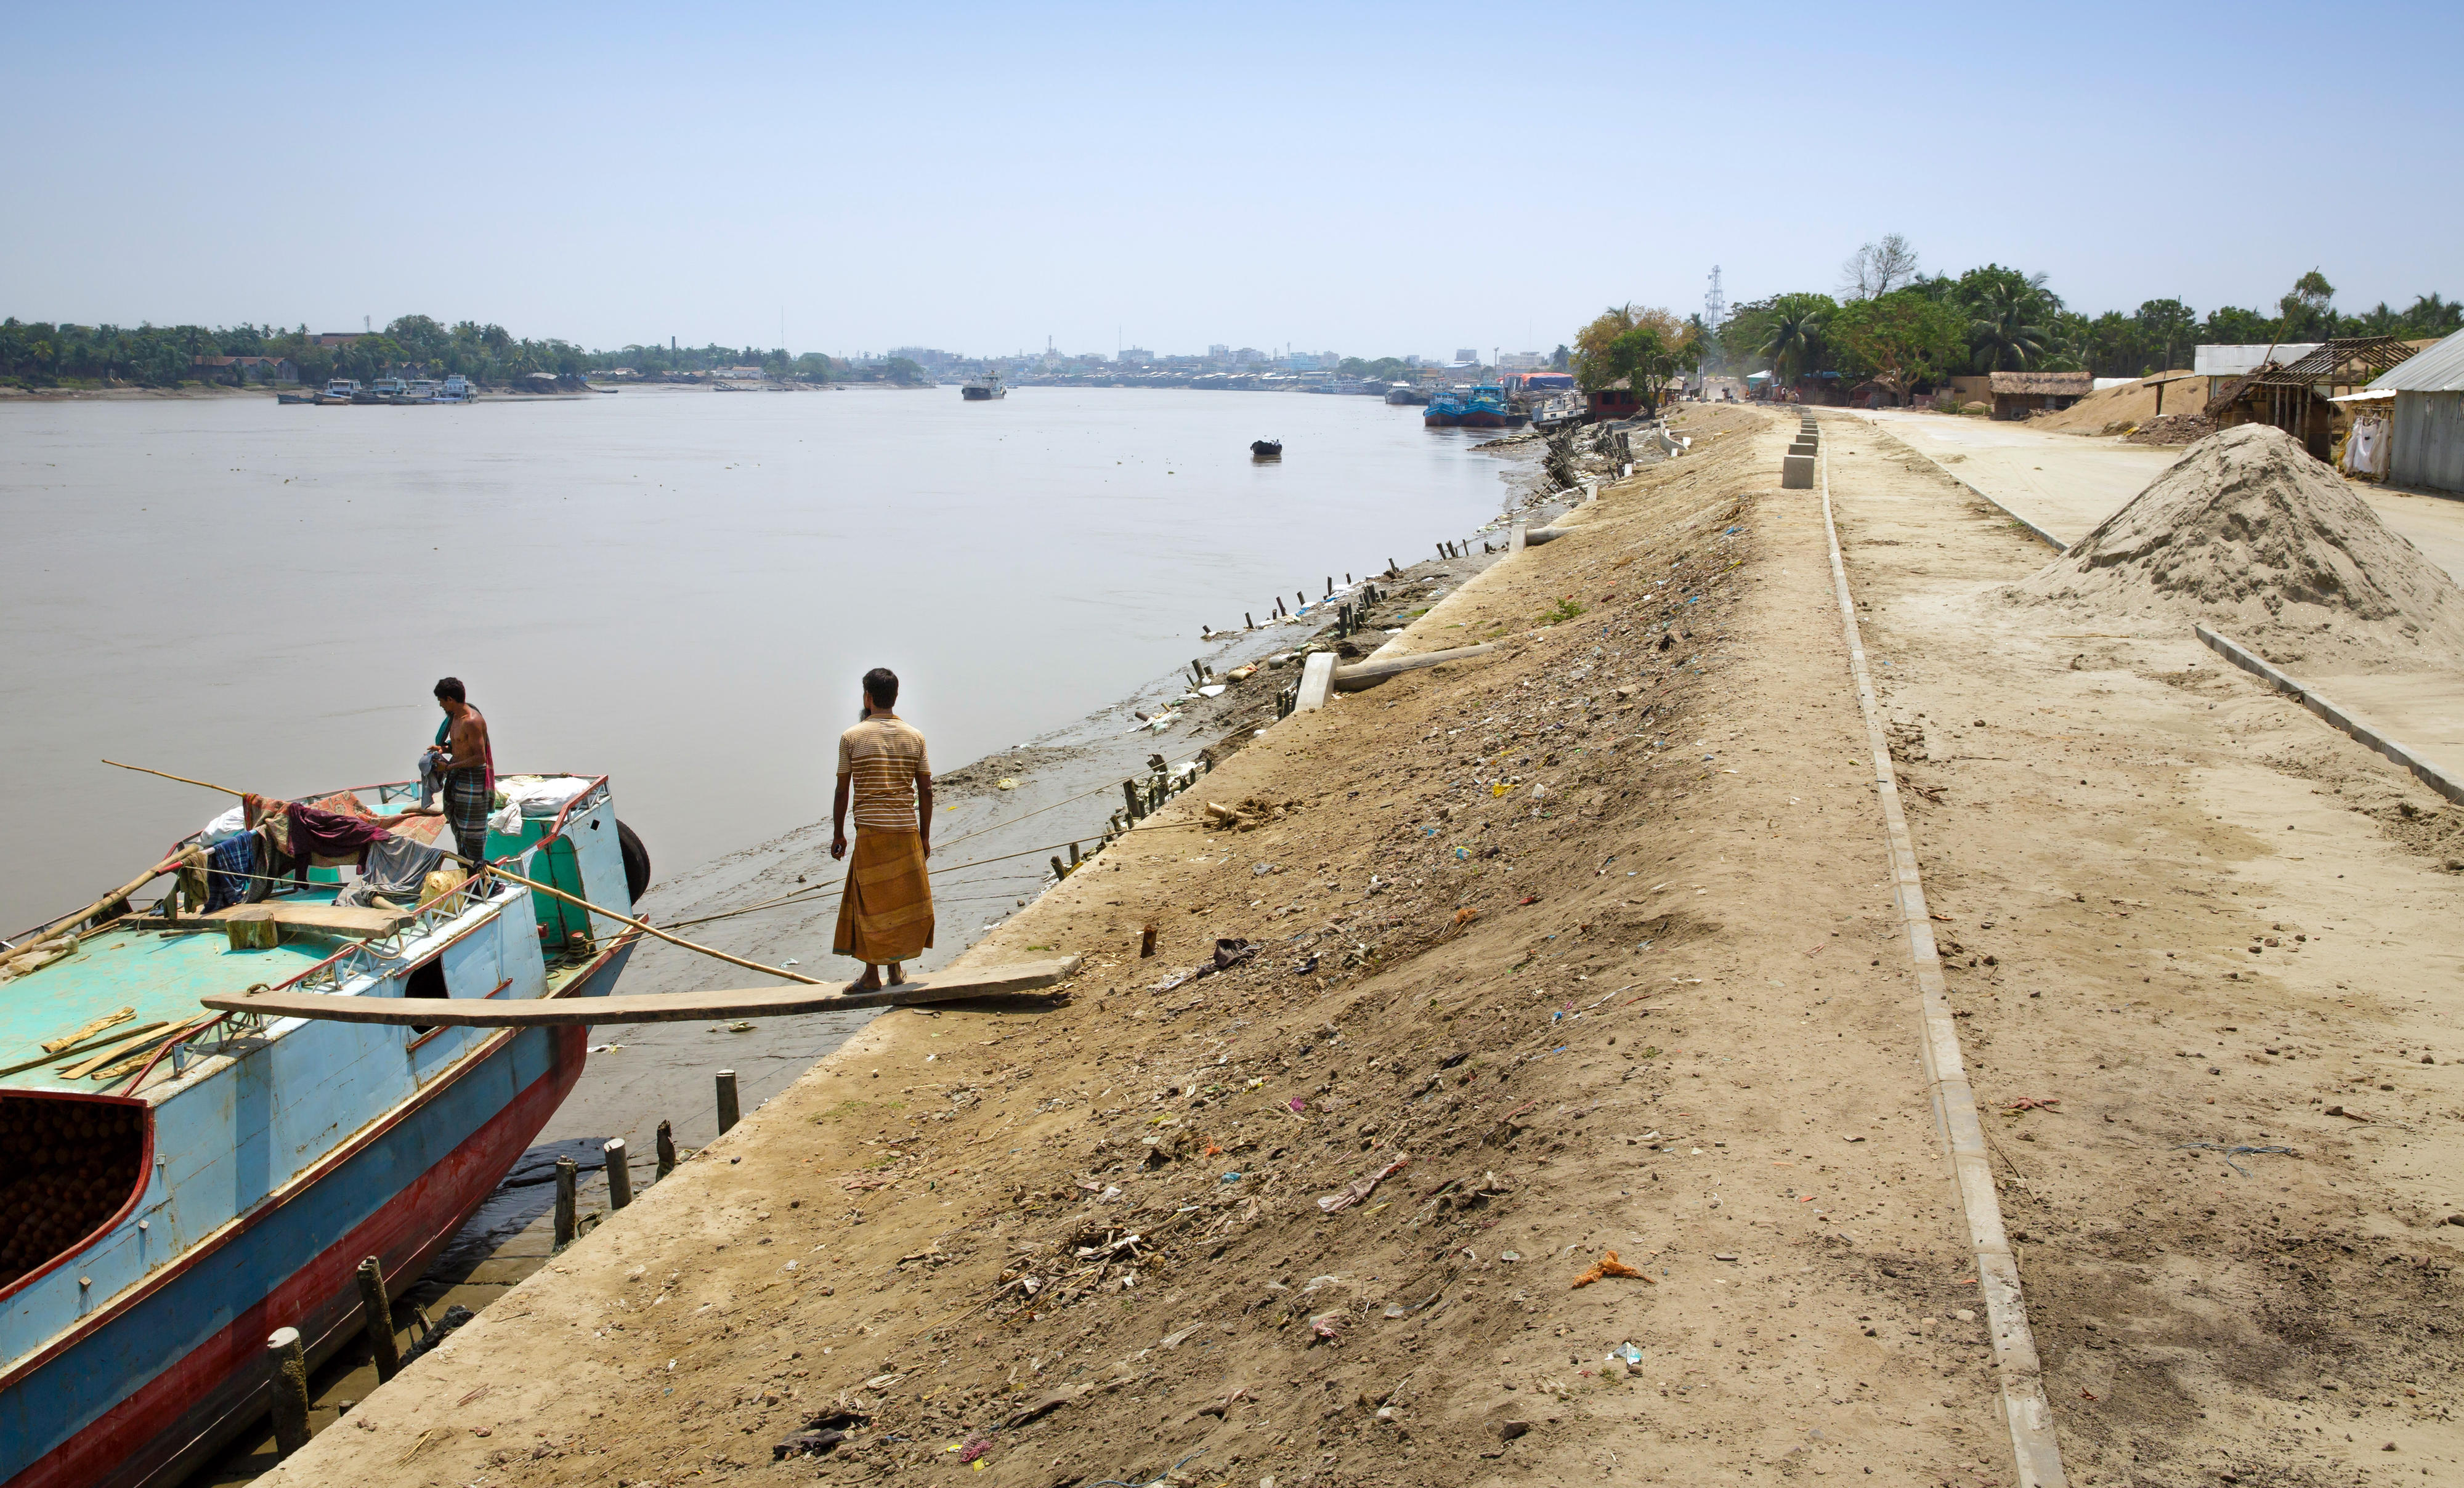 Dam road to protect a residential area at the port of Khulna in Bangladesh